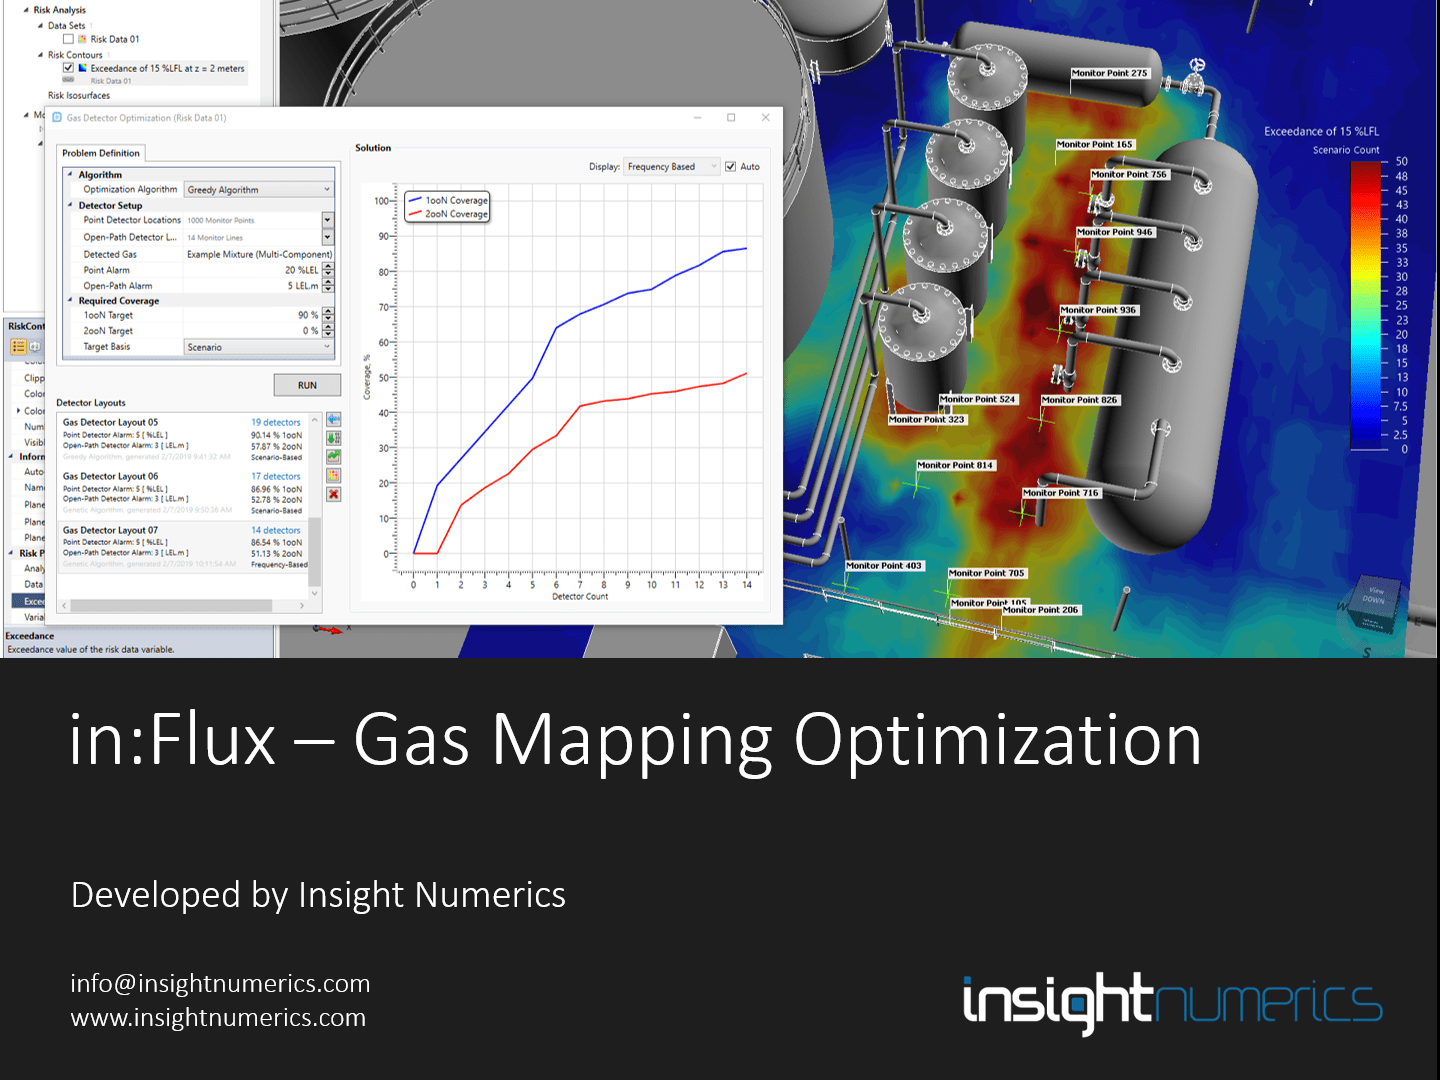 in:Flux Intelligent CFD Software Marketing Presentation